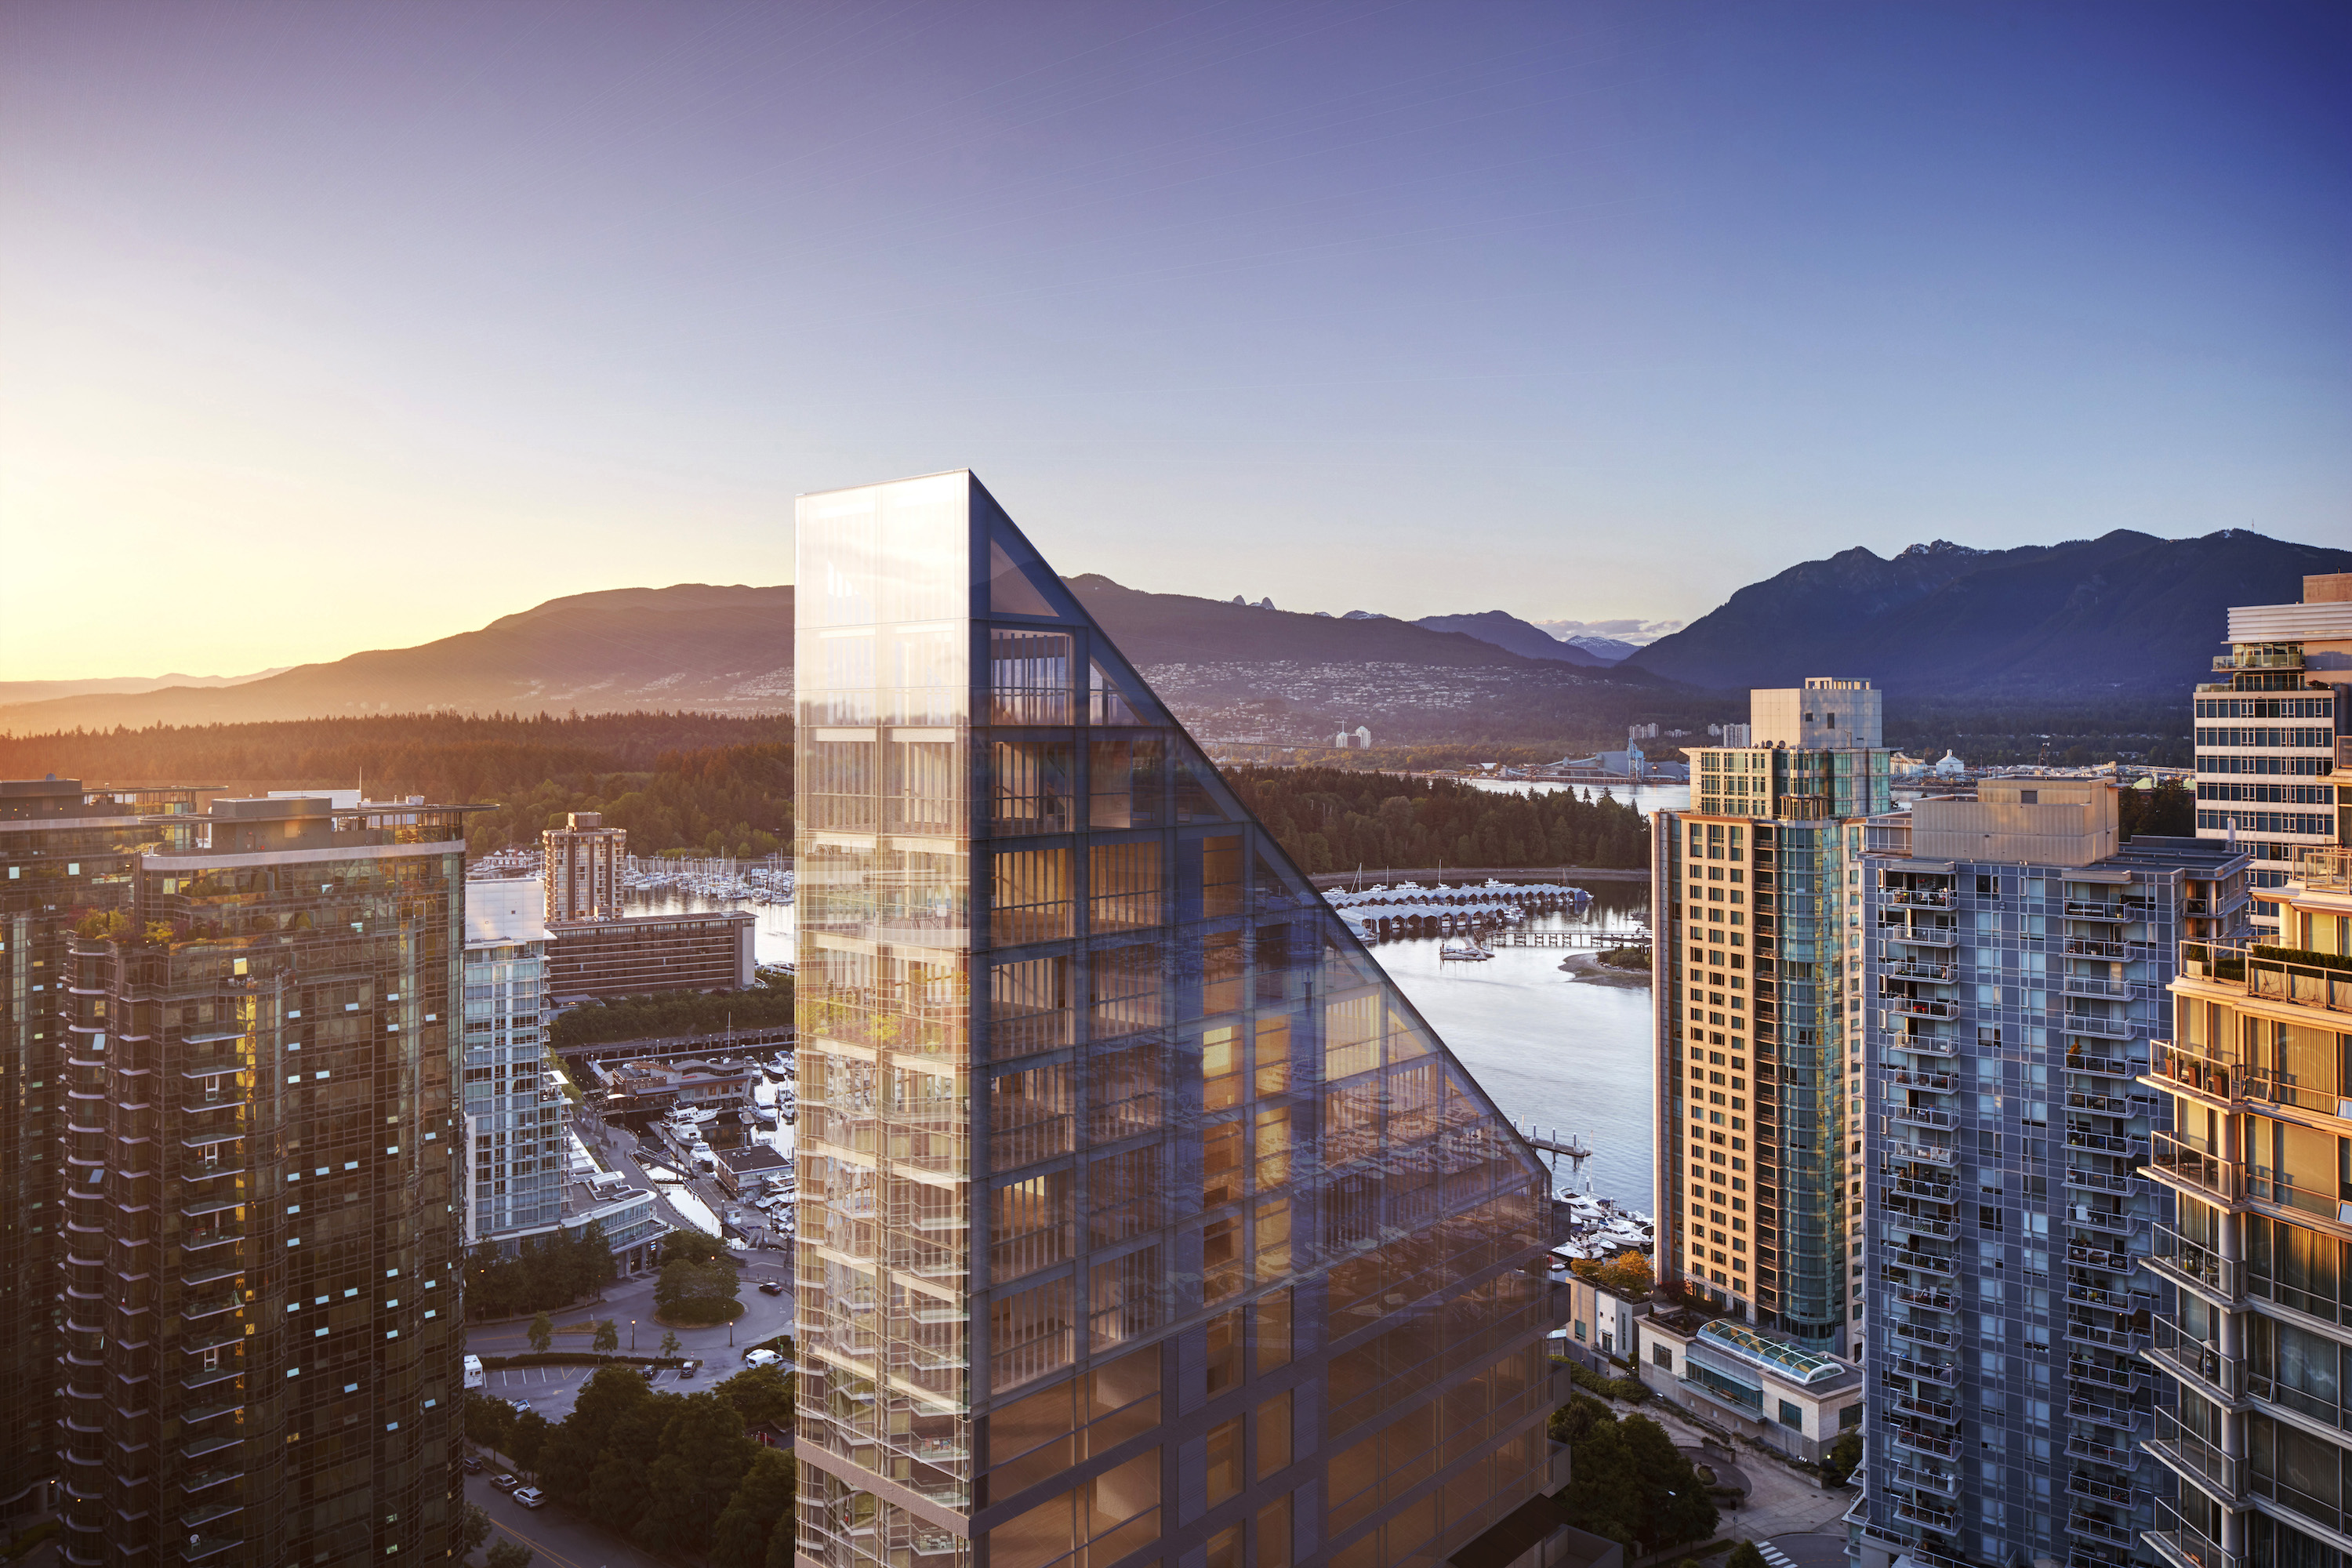 Shigeru ban designs tower expected to be world s tallest for Terrace house new season